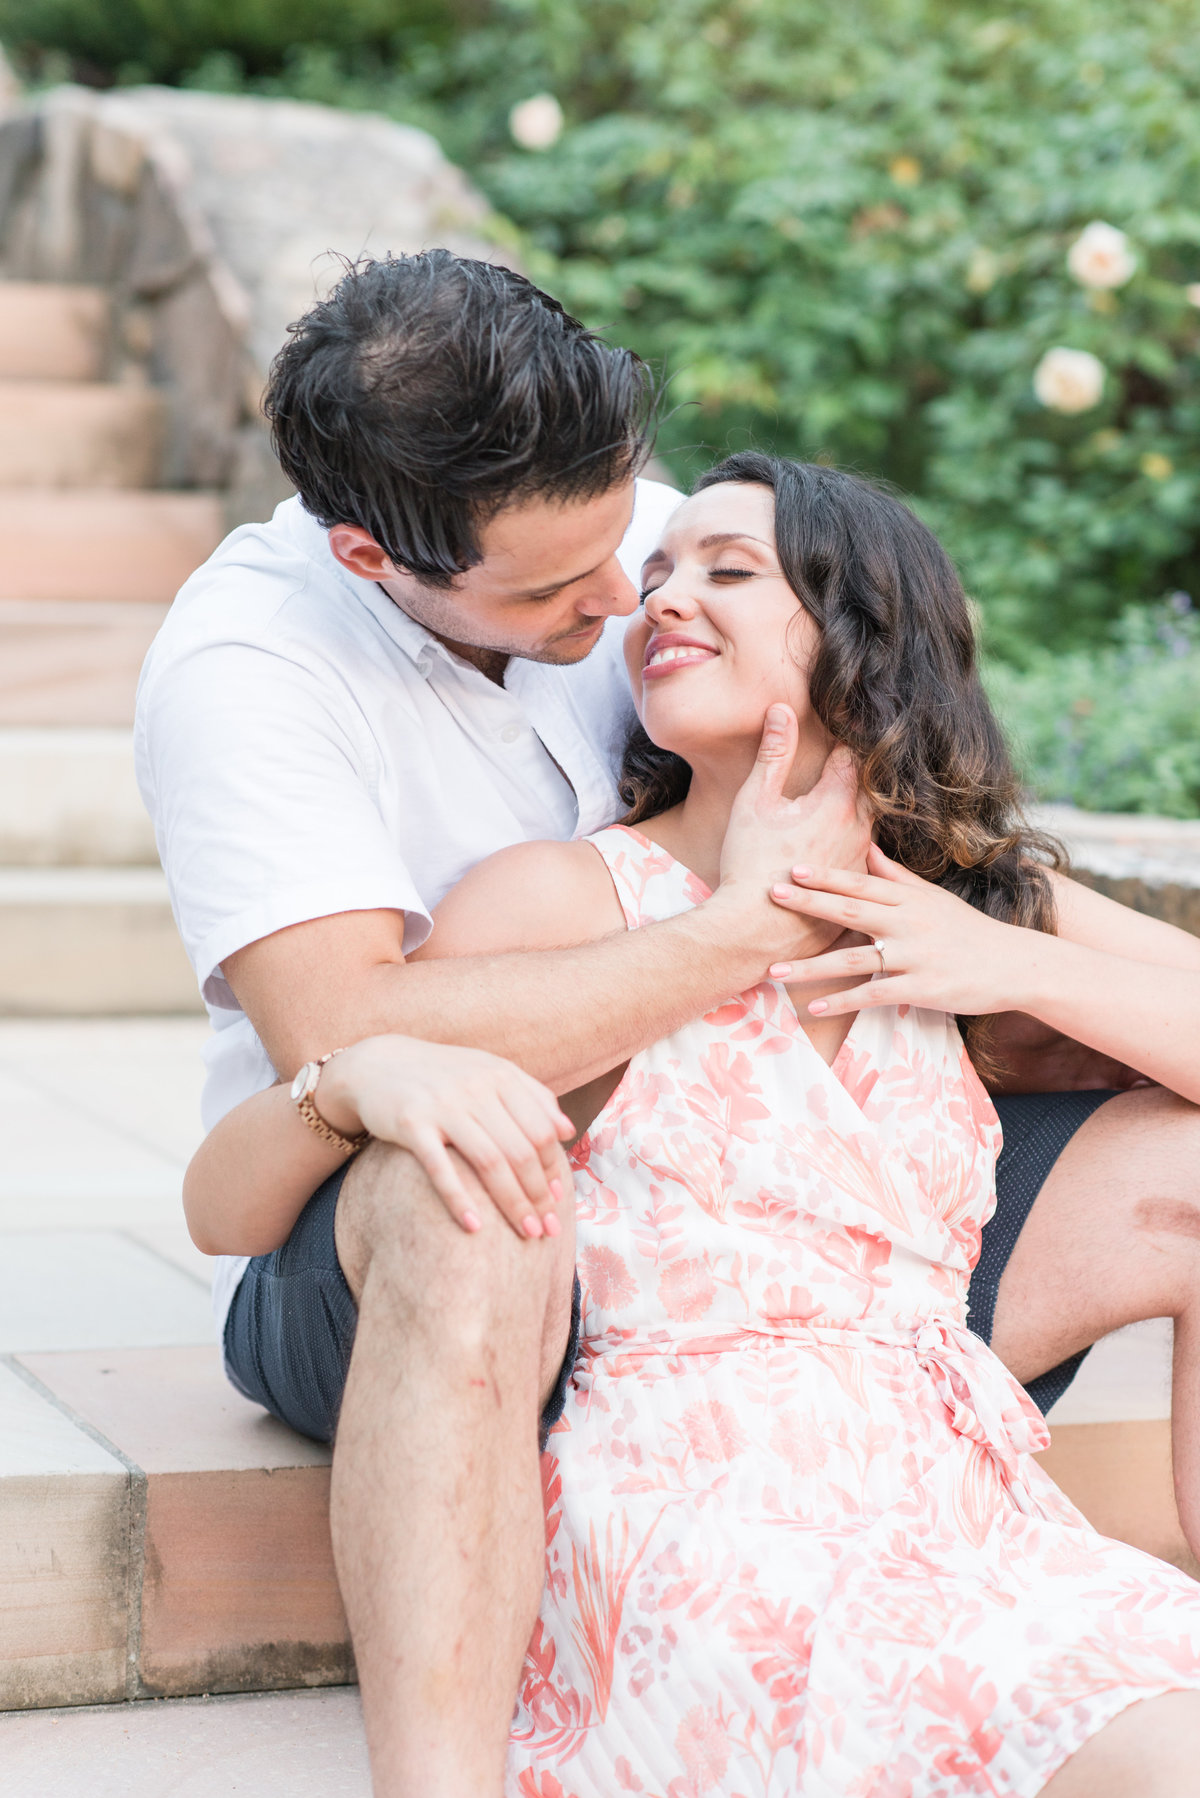 an engagement session at Sarah P Duke Gardens with a bride sitting on the marbled steps snuggled into her fiance almost about to kiss each other in front of a rose garden in Durham